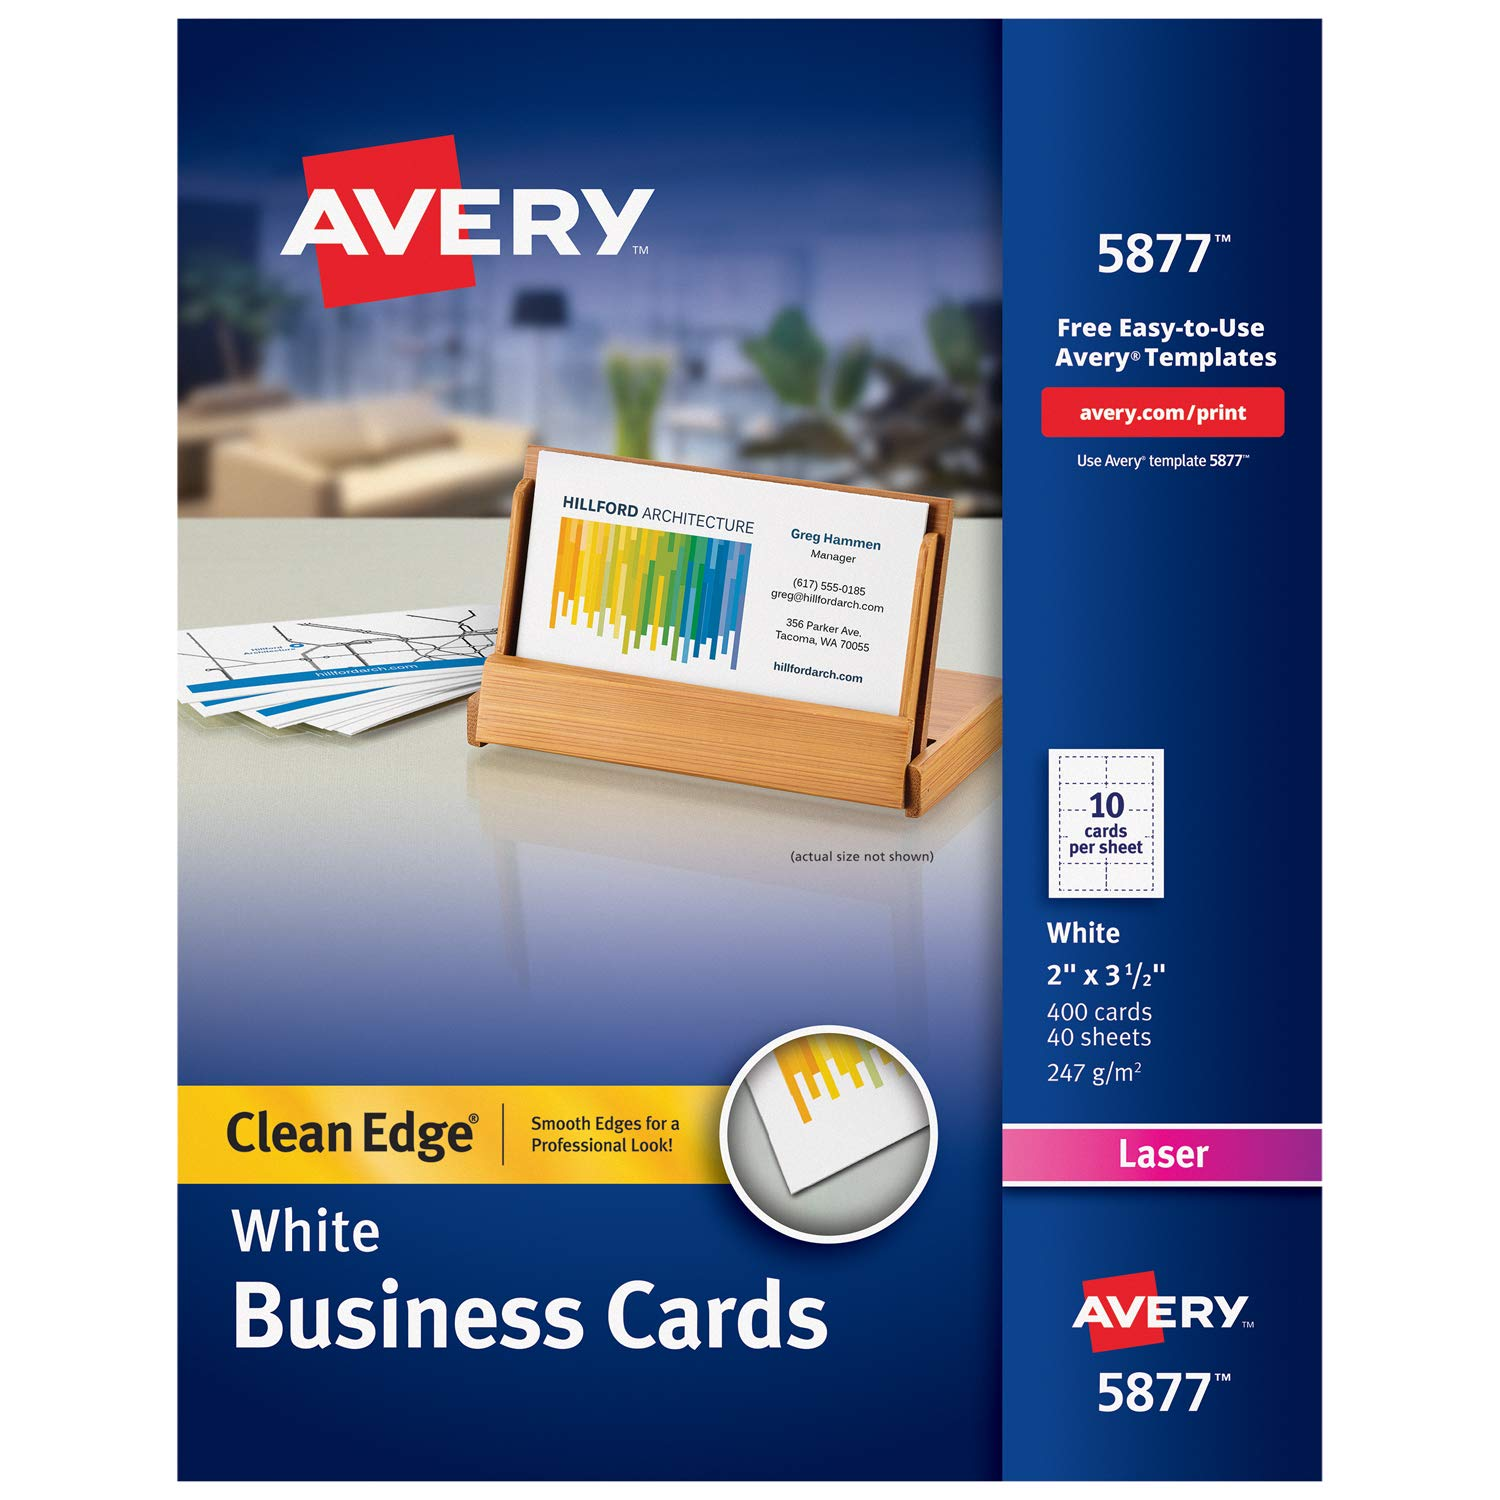 Avery Printable Business Cards, Laser Printers, 400 Cards, 2 x 3.5, Clean Edge (5877)